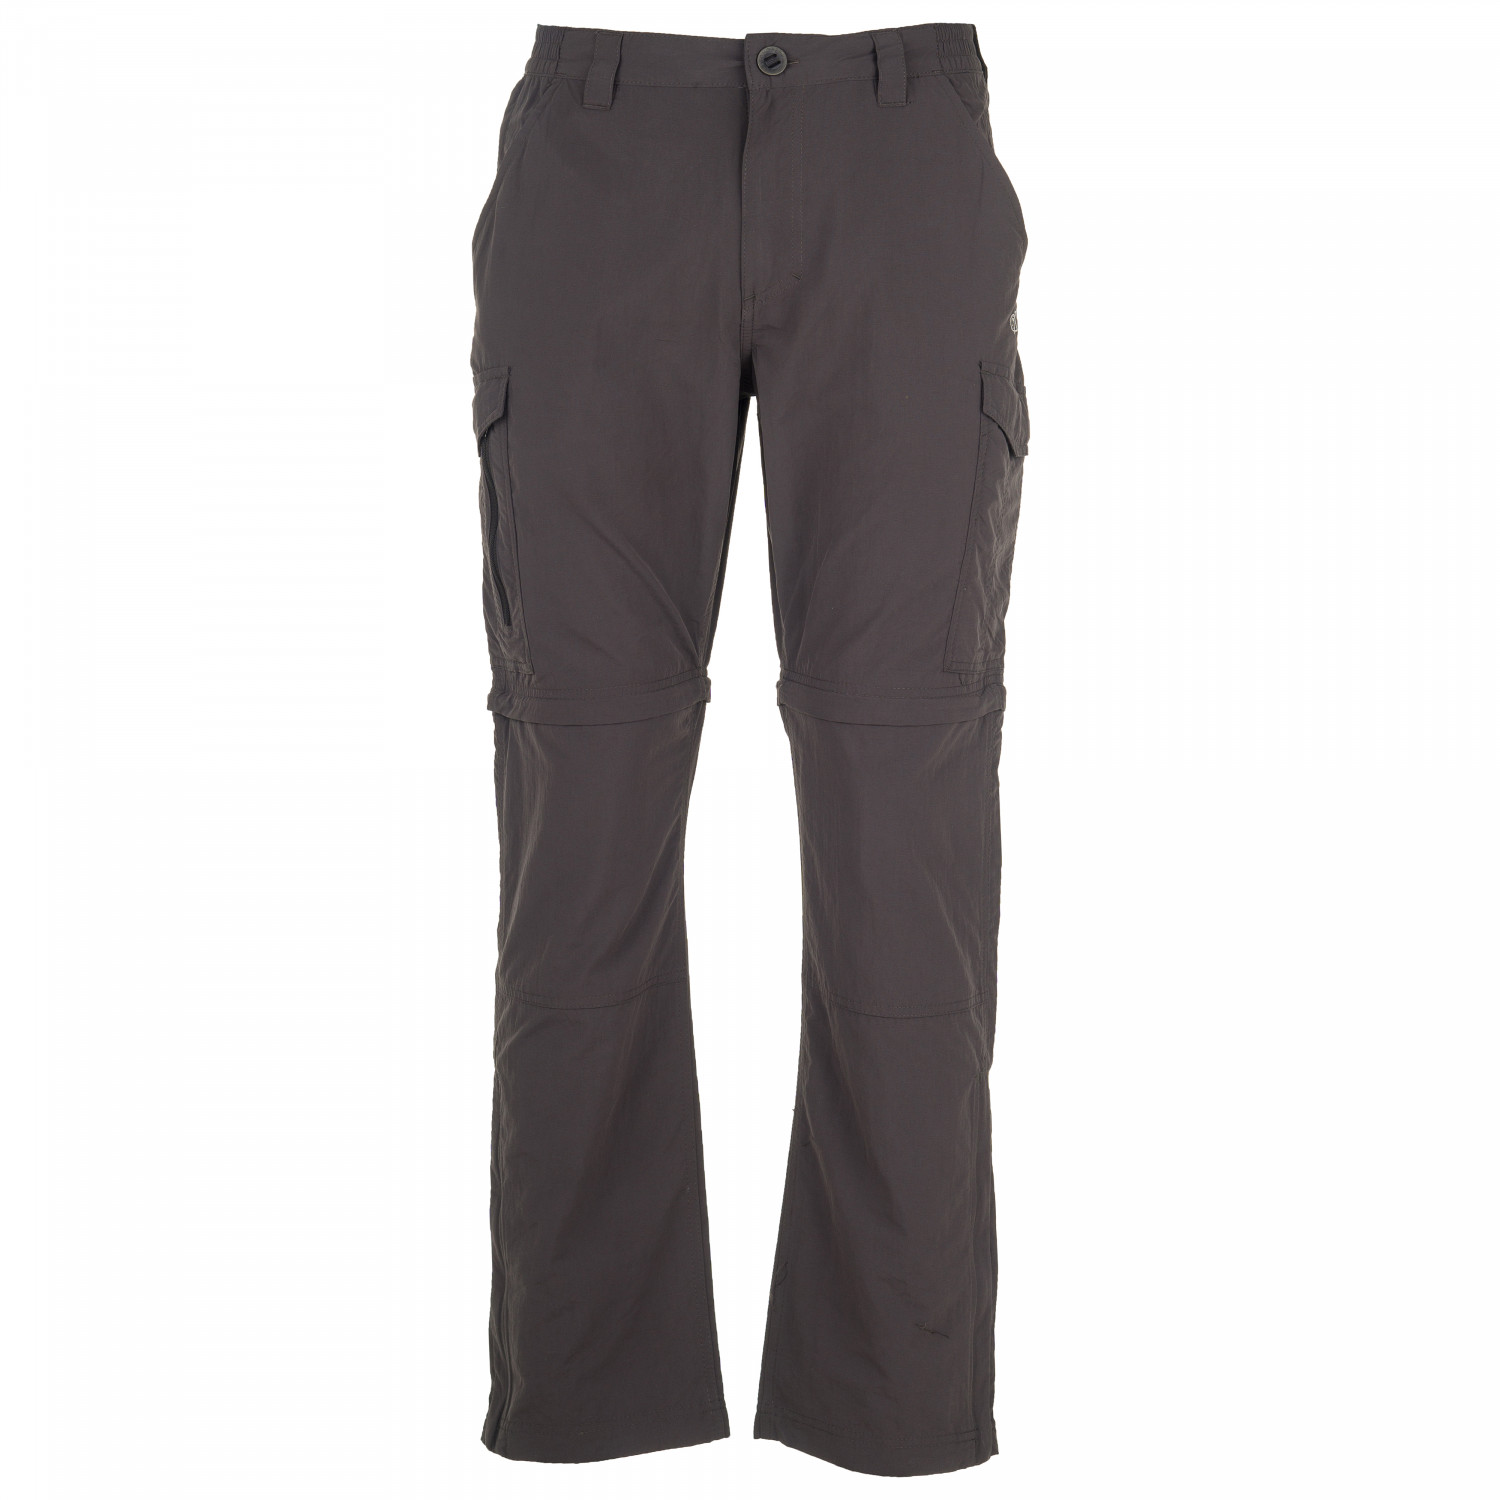 Craghoppers NosiLife Convertible Long Trousers